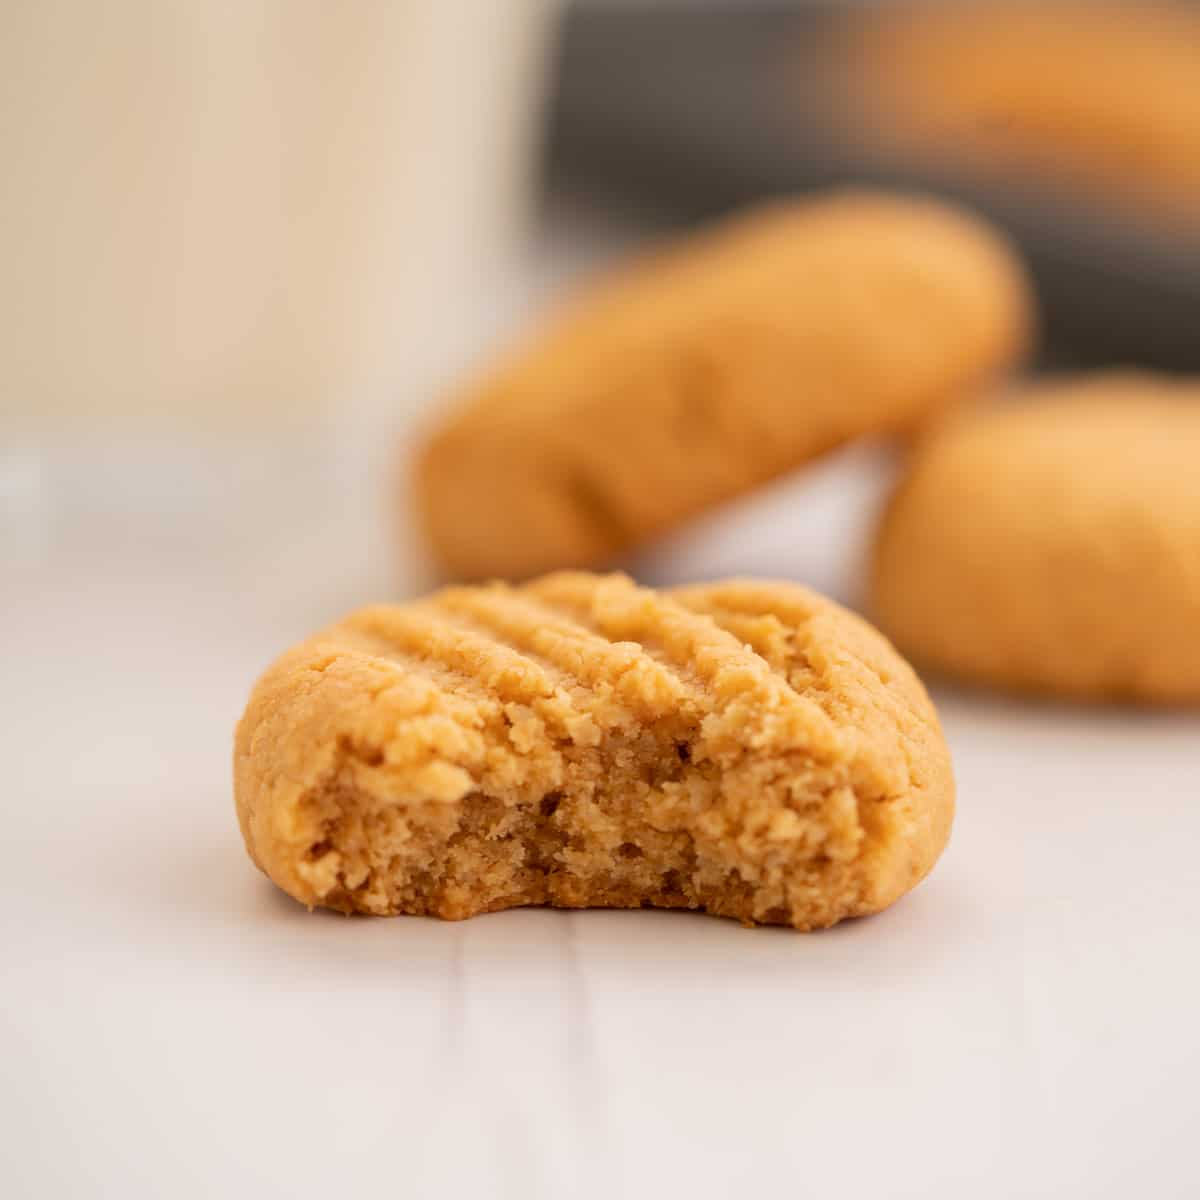 A peanut butter cookie that has been bitten in half revealing the soft cookie centre.